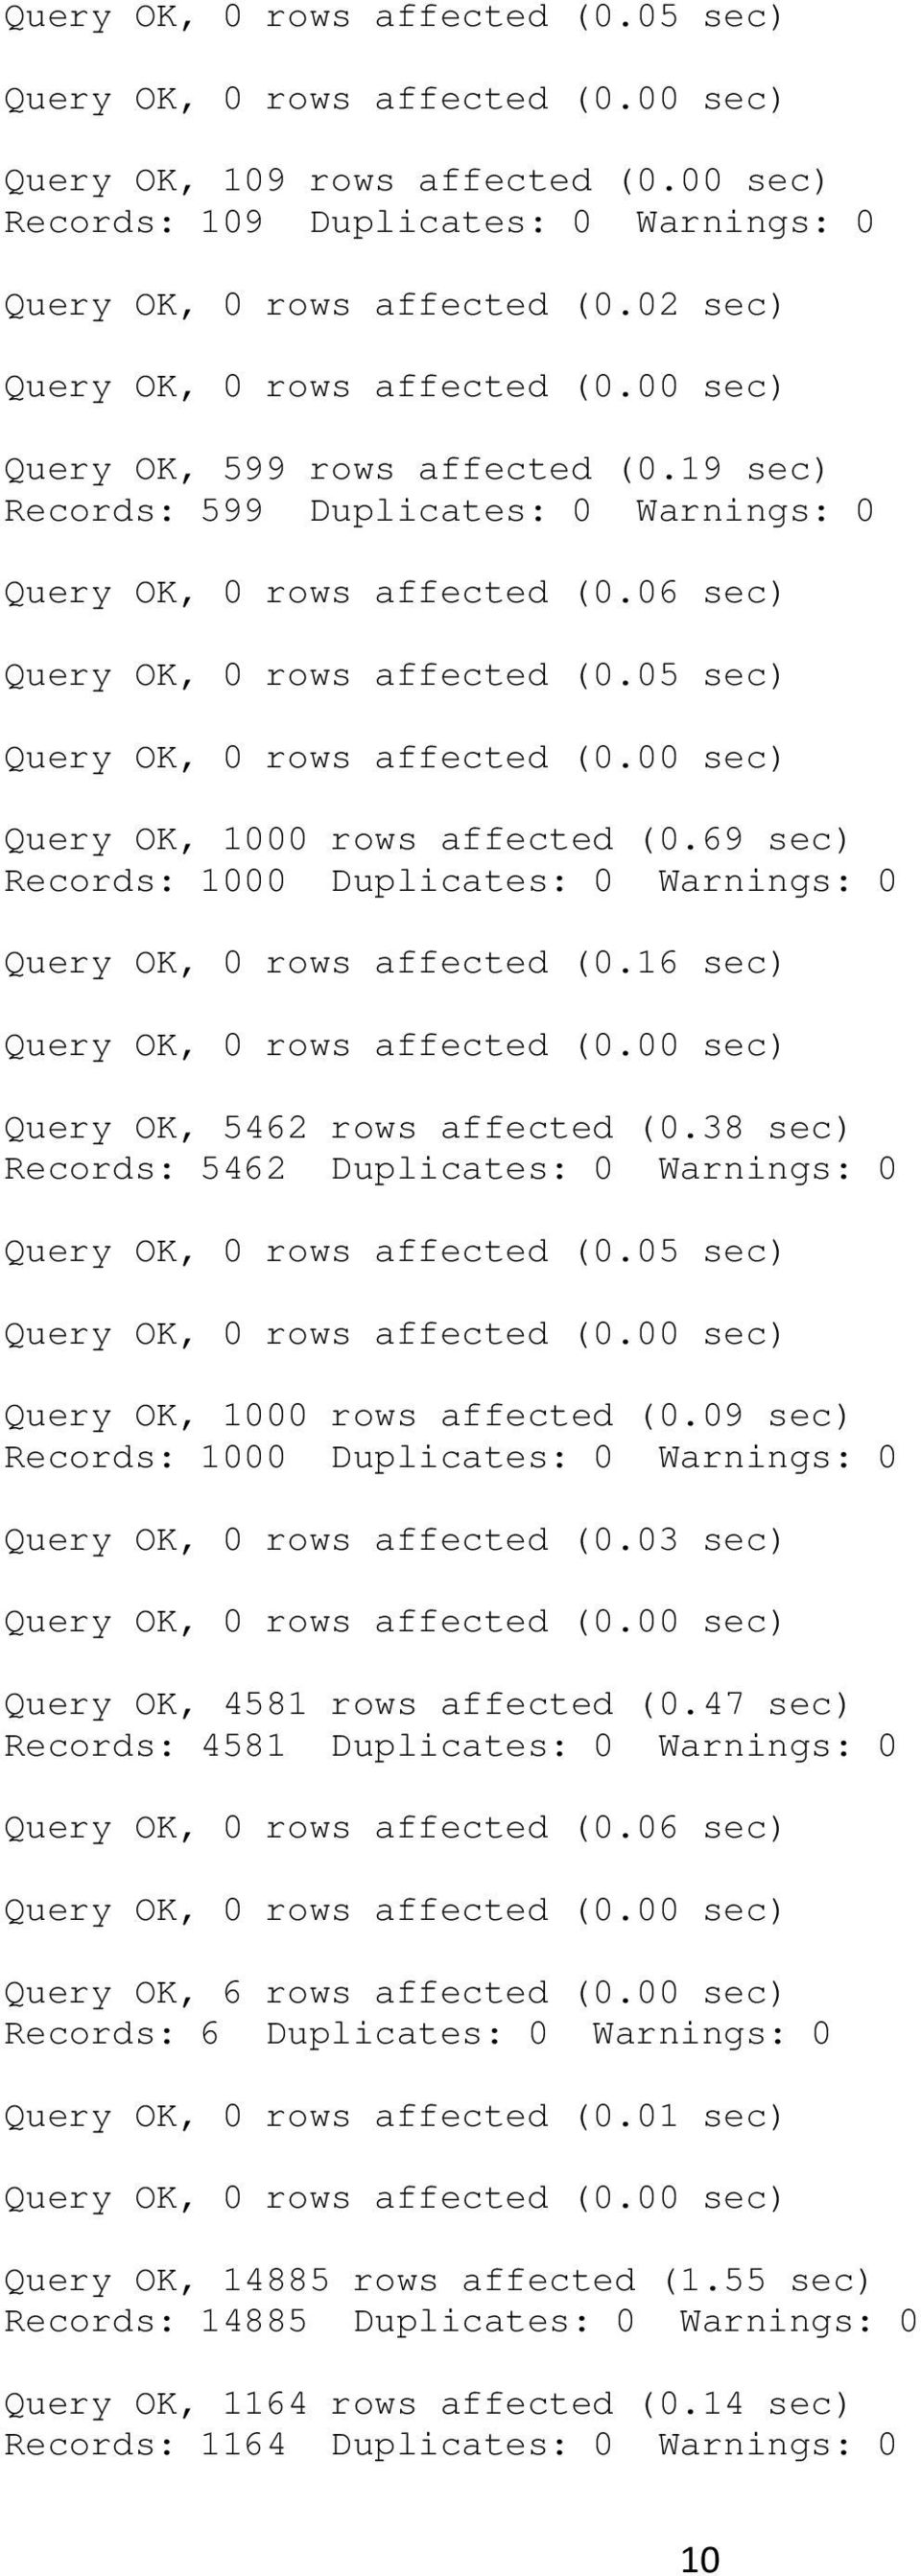 38 sec) Records: 5462 Duplicates: 0 Warnings: 0 Query OK, 1000 rows affected (0.09 sec) Records: 1000 Duplicates: 0 Warnings: 0 Query OK, 0 rows affected (0.03 sec) Query OK, 4581 rows affected (0.